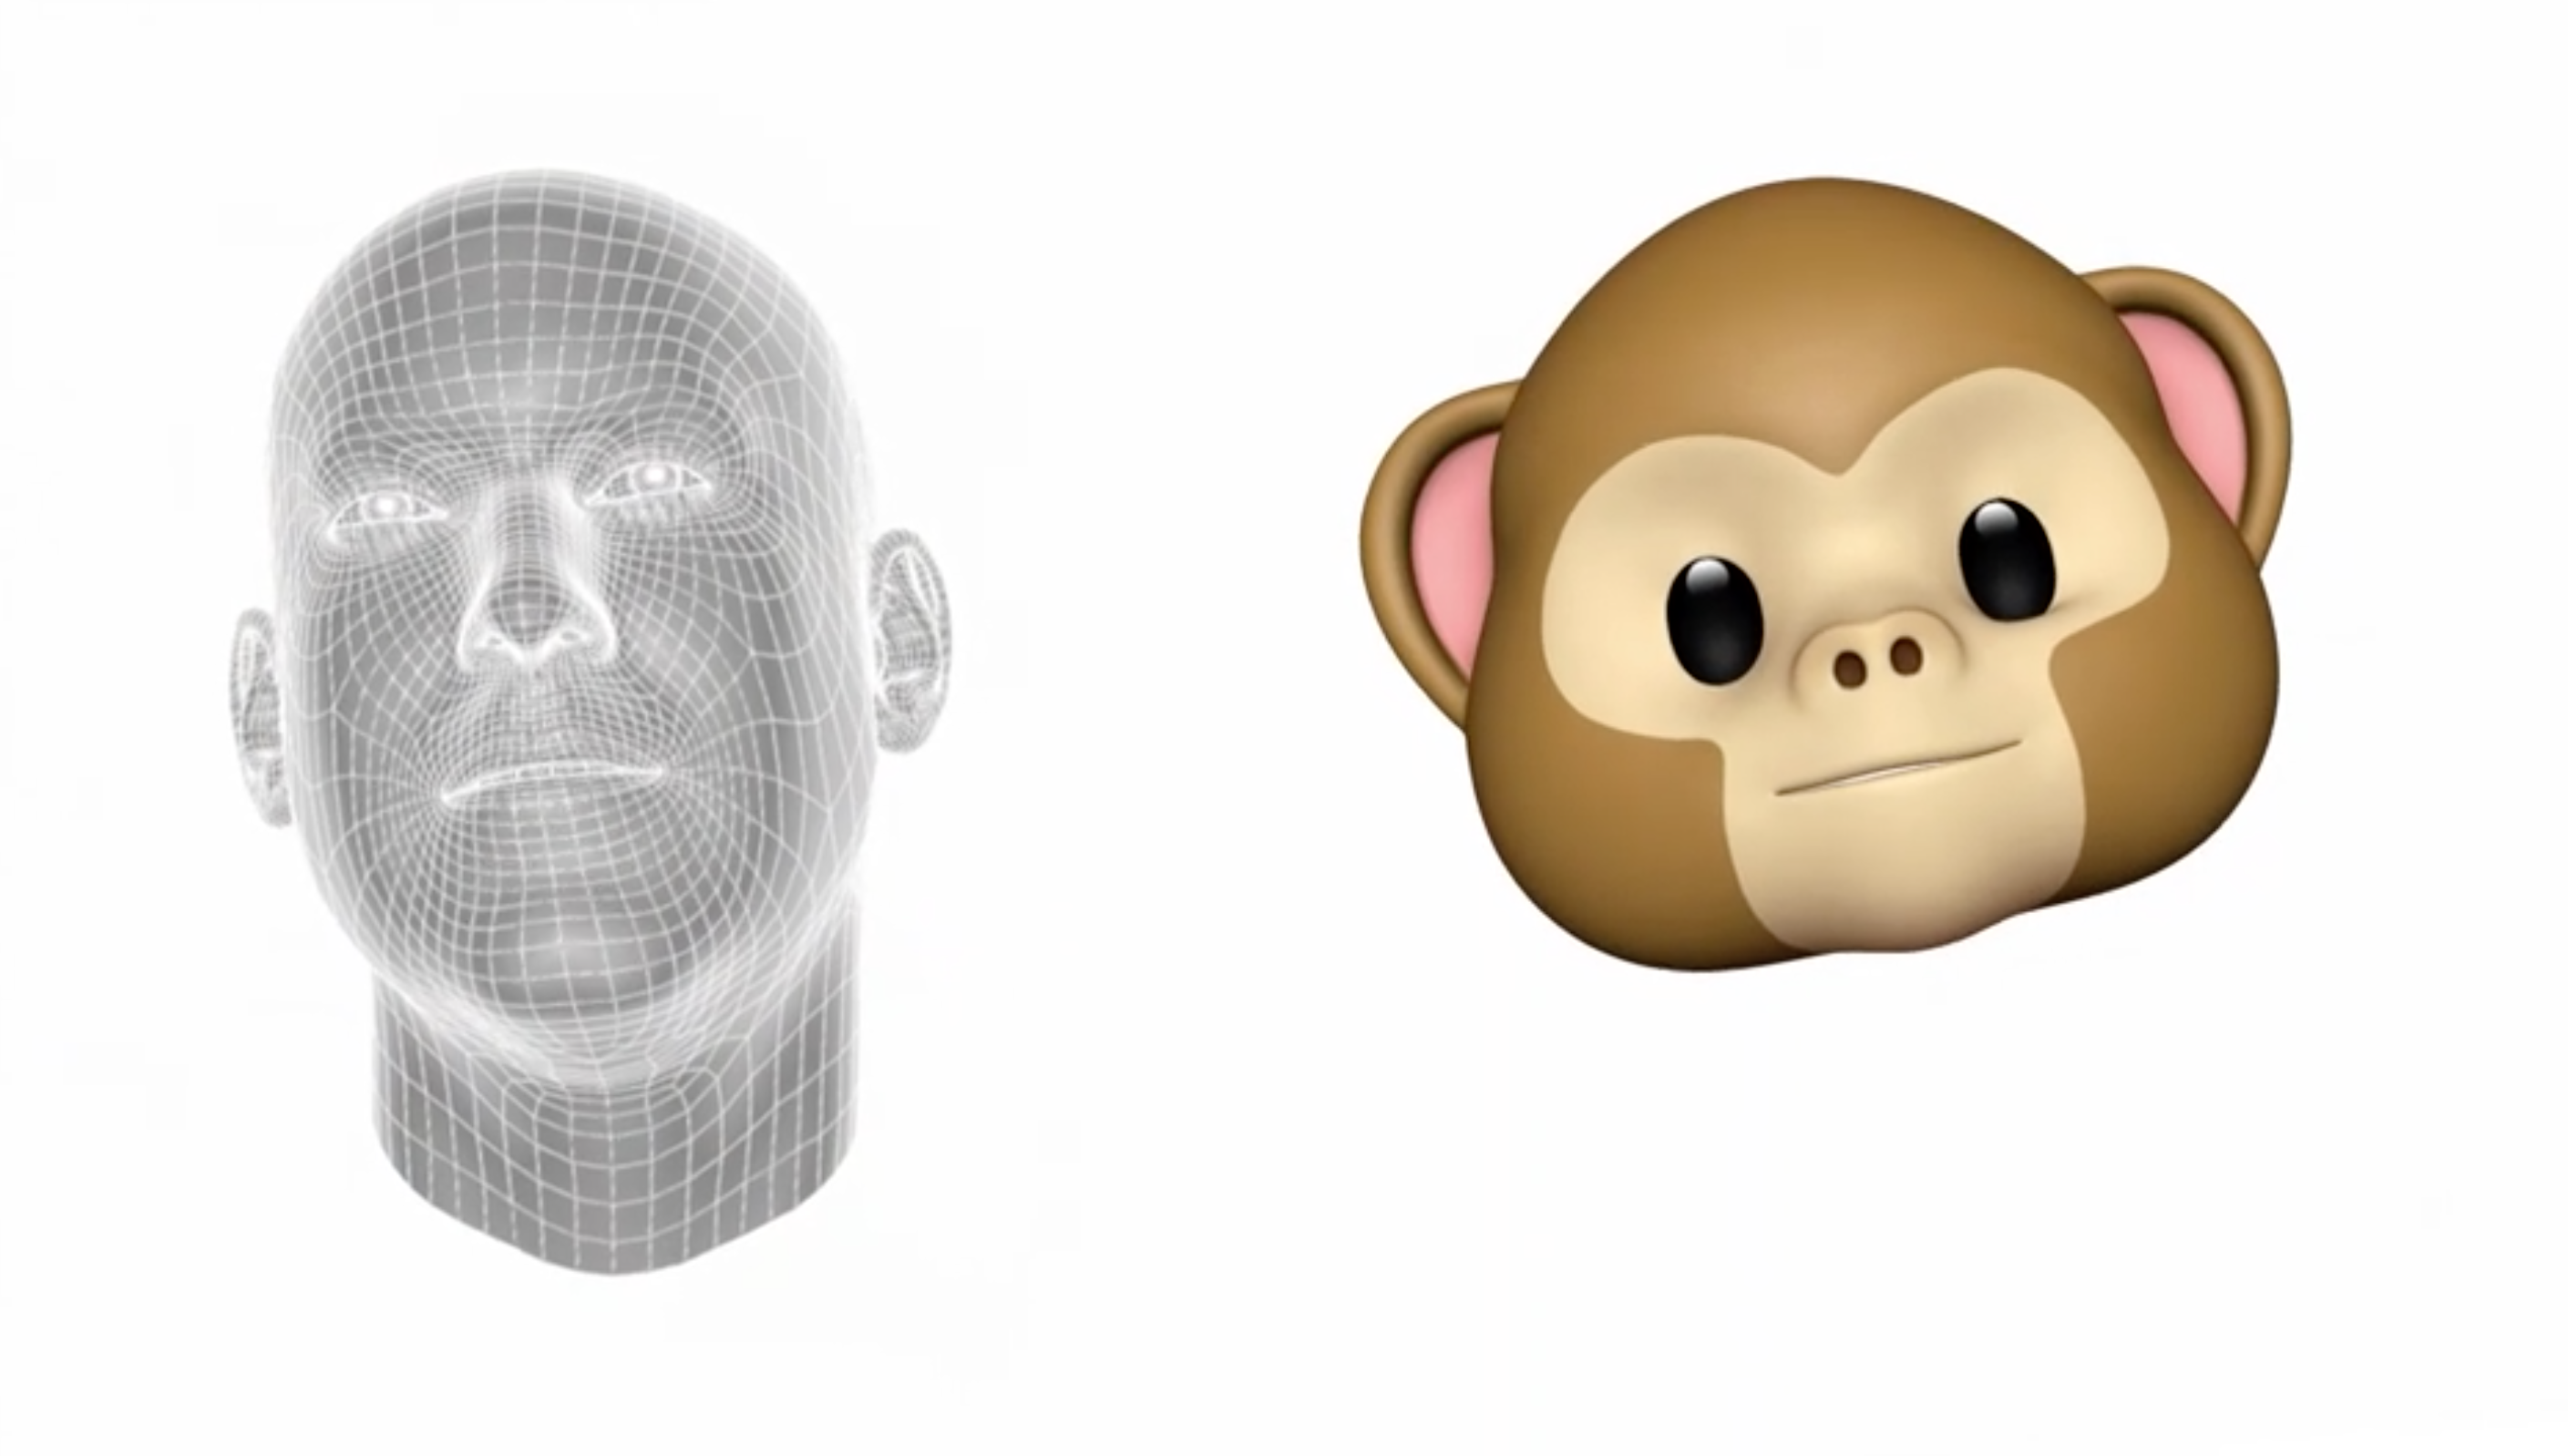 becoming-a-unicorn-will-soon-be-possible-with-apples-augmented-reality-animoji-technology